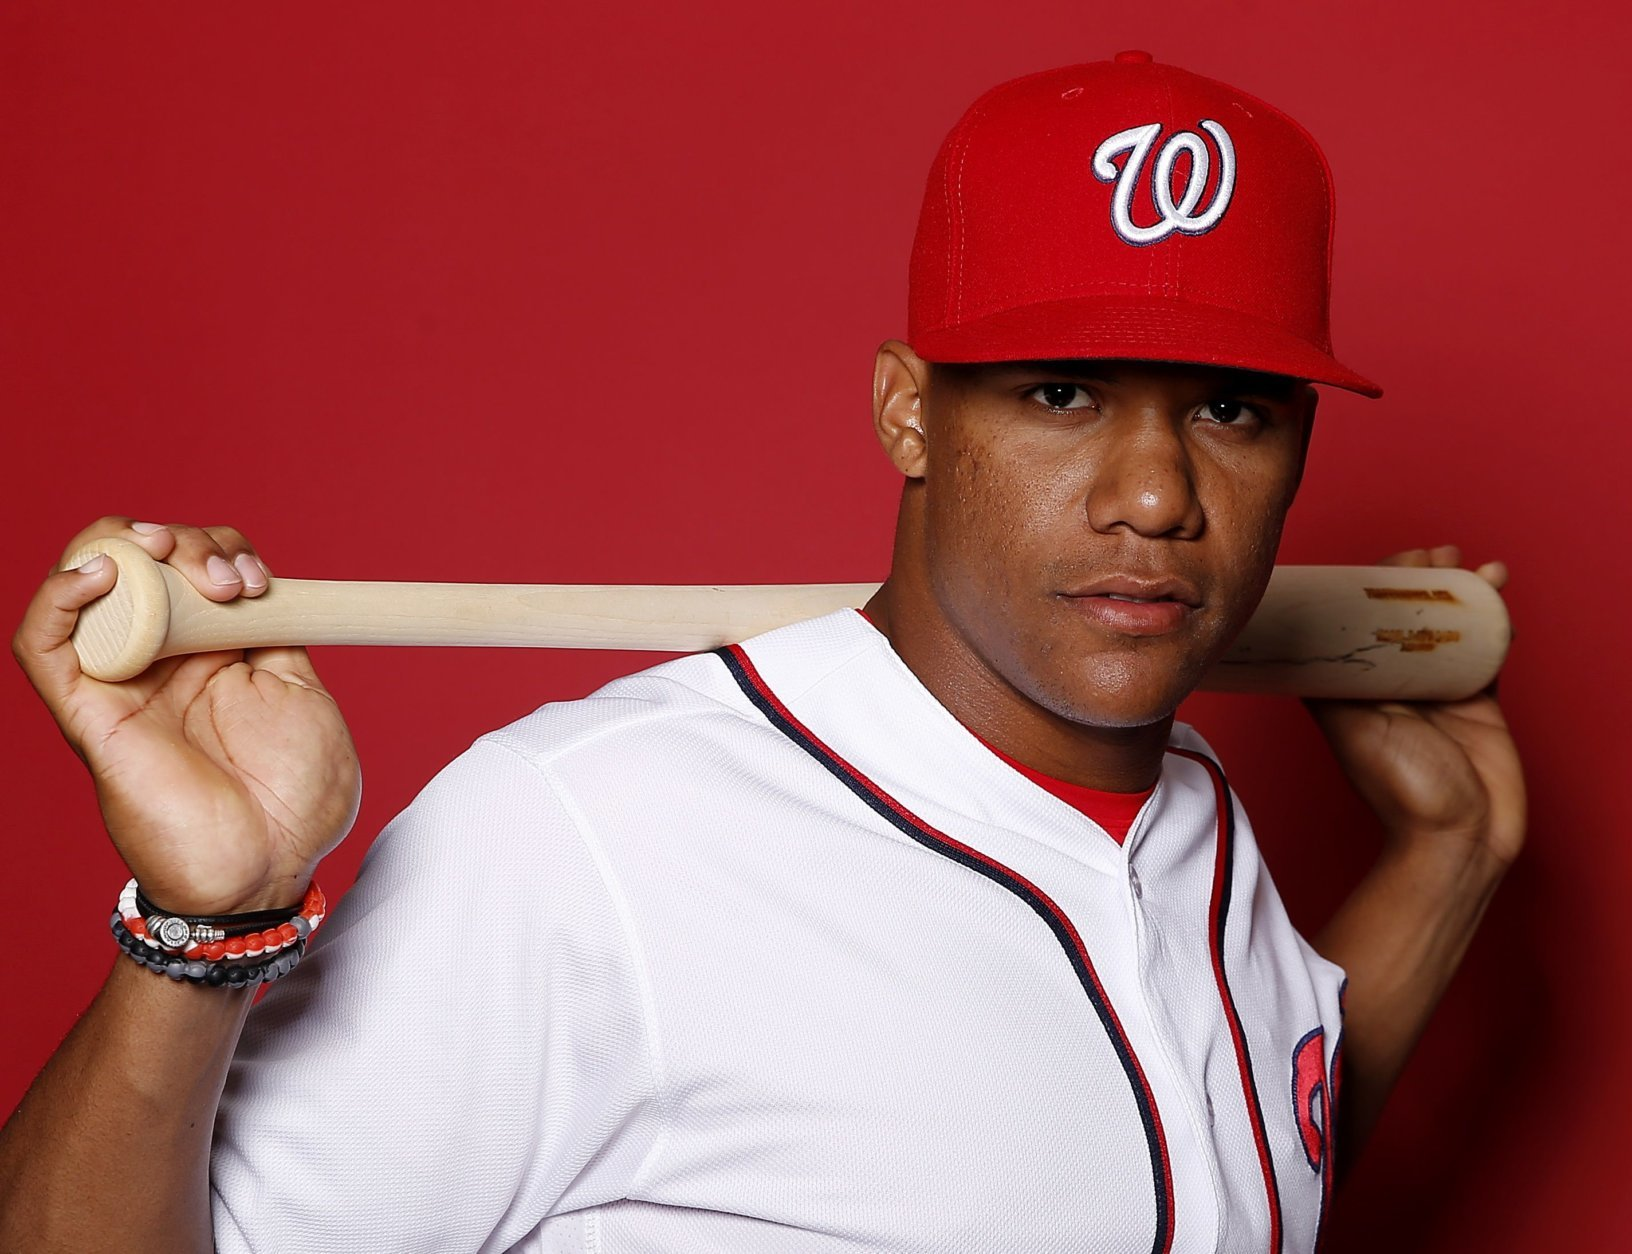 WEST PALM BEACH, FLORIDA - FEBRUARY 22:  Juan Soto #22 of the Washington Nationals poses for a portrait on Photo Day at FITTEAM Ballpark of The Palm Beaches during on February 22, 2019 in West Palm Beach, Florida. (Photo by Michael Reaves/Getty Images)